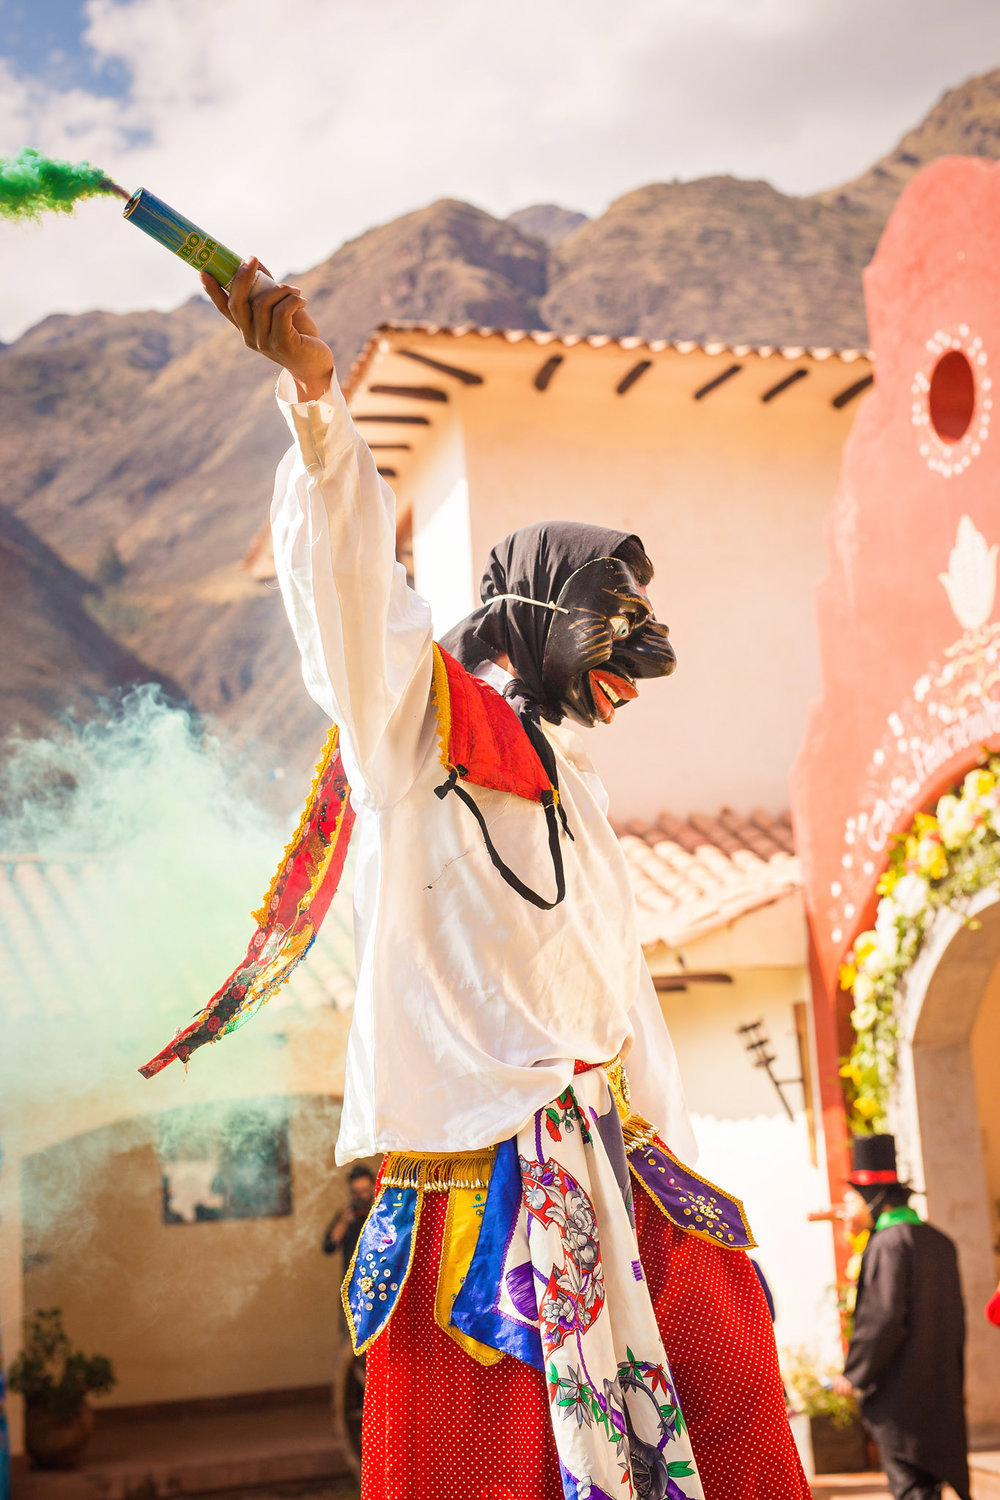 Wedding-Travellers-Destination-Wedding-Peru-Cusco-Hacienda-Sarapampa-Sacred-Valley-amusement-entertainment-traditional-costumes